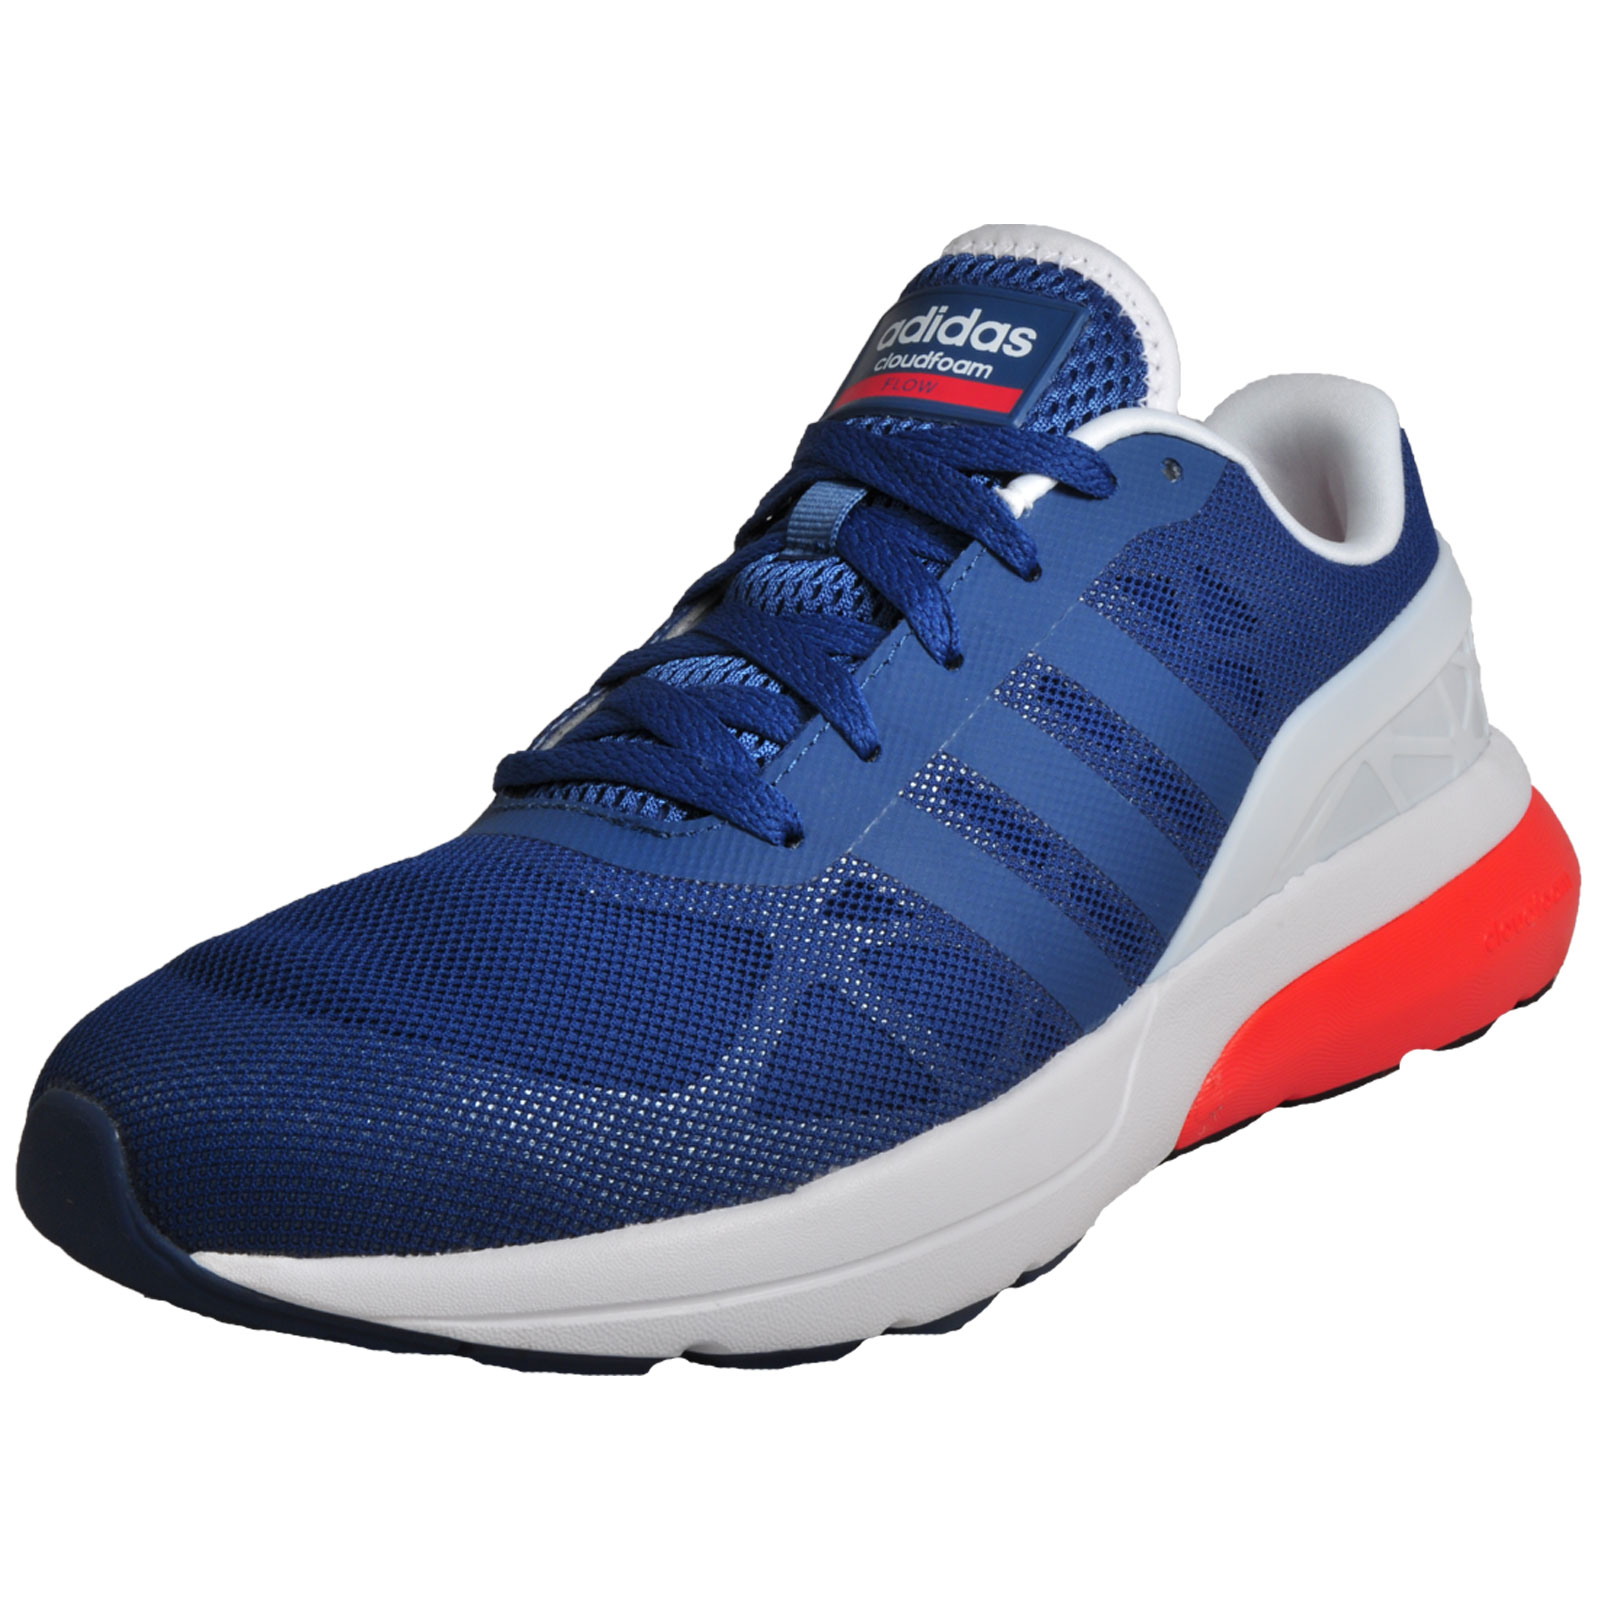 competitive price dc465 406fa Details about Adidas Neo Cloudfoam Flow Men s Running Shoes Fitness Gym  Trainers Blue